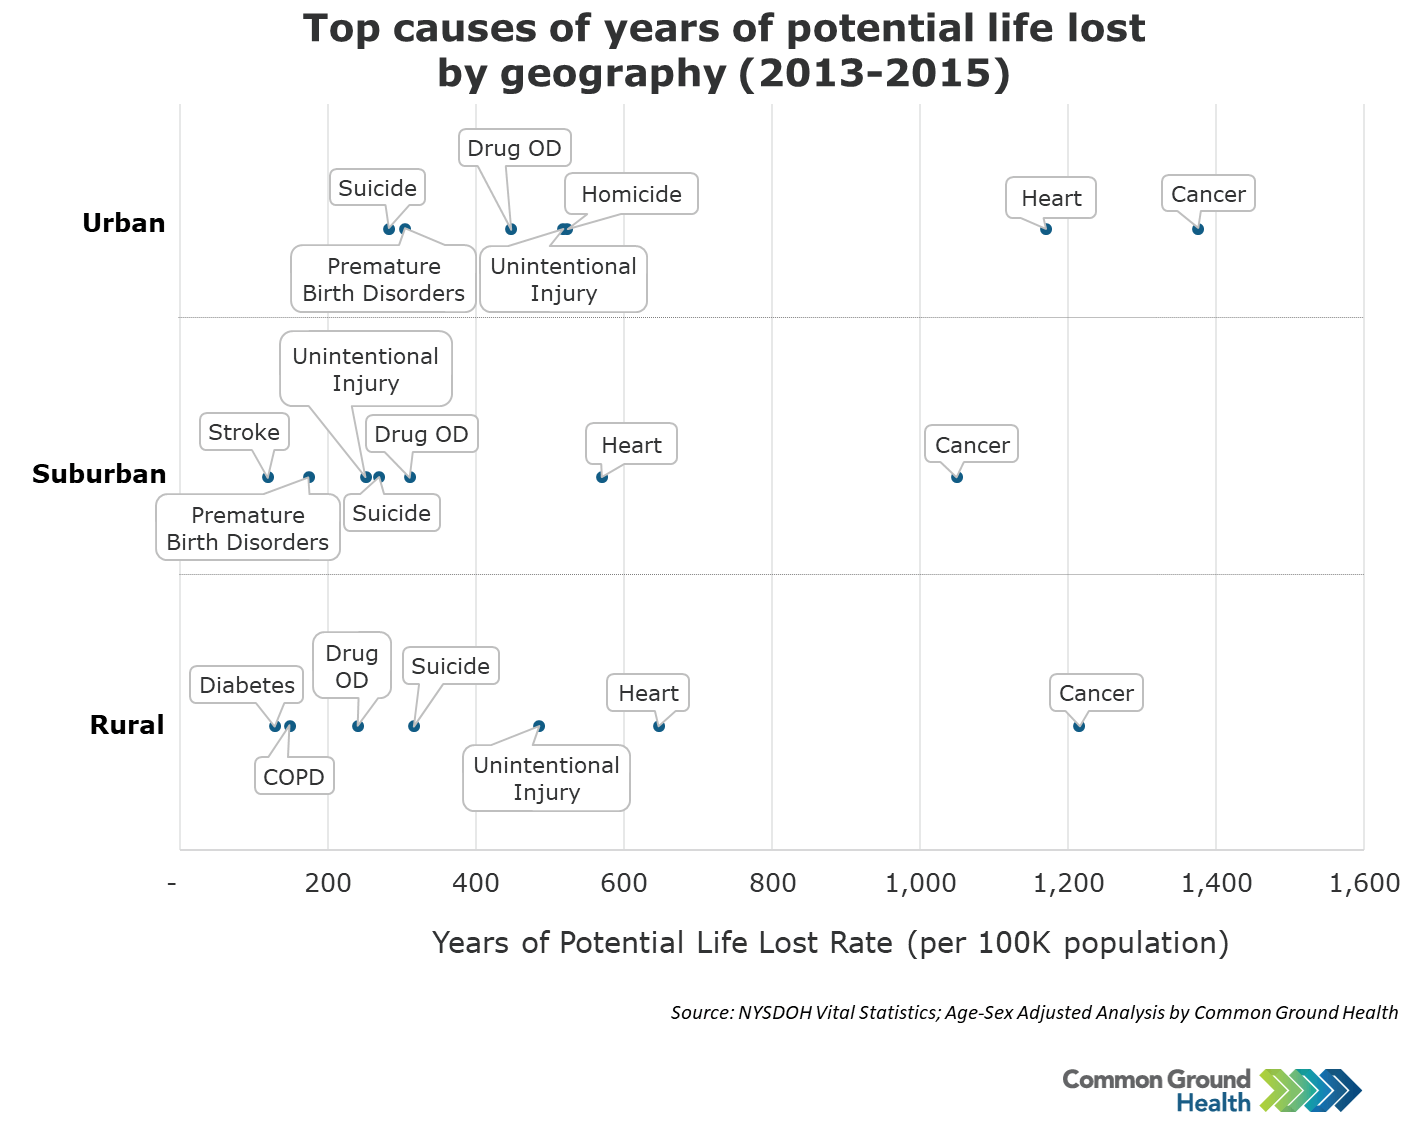 Top Causes of Years of Potential Life Lost by Geography